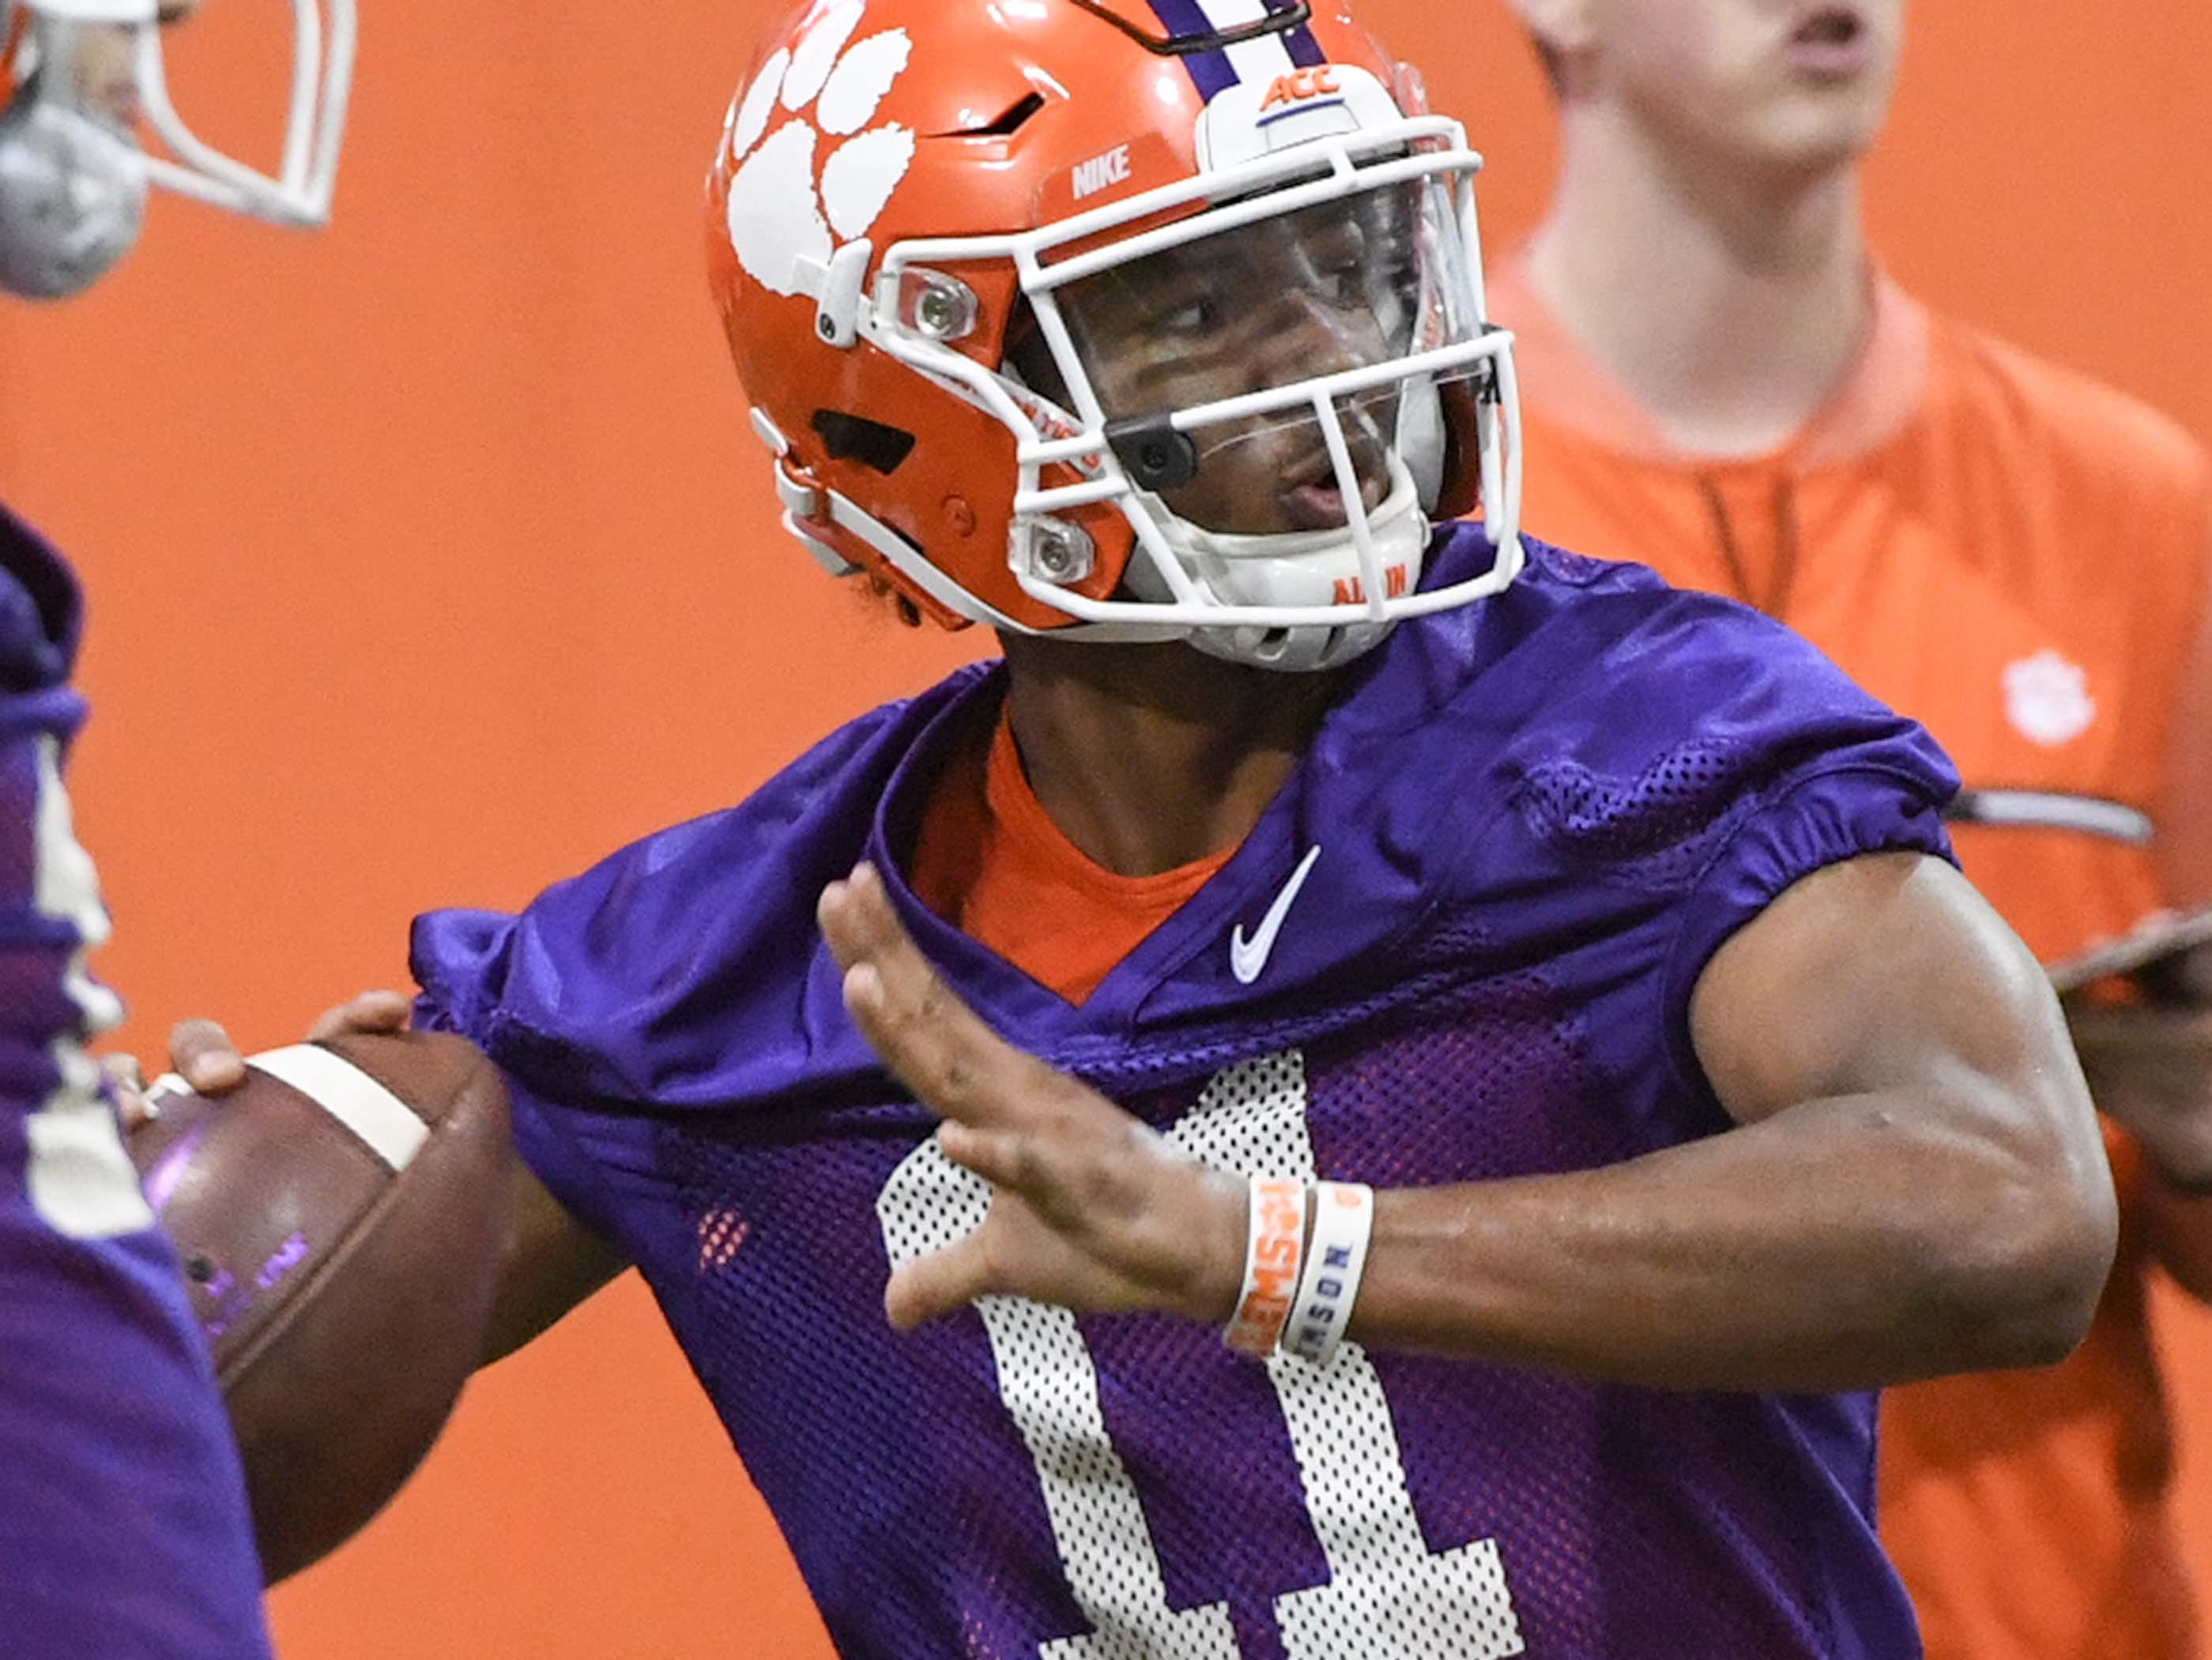 during practice at the Poe Indoor Facility in Clemson Friday.